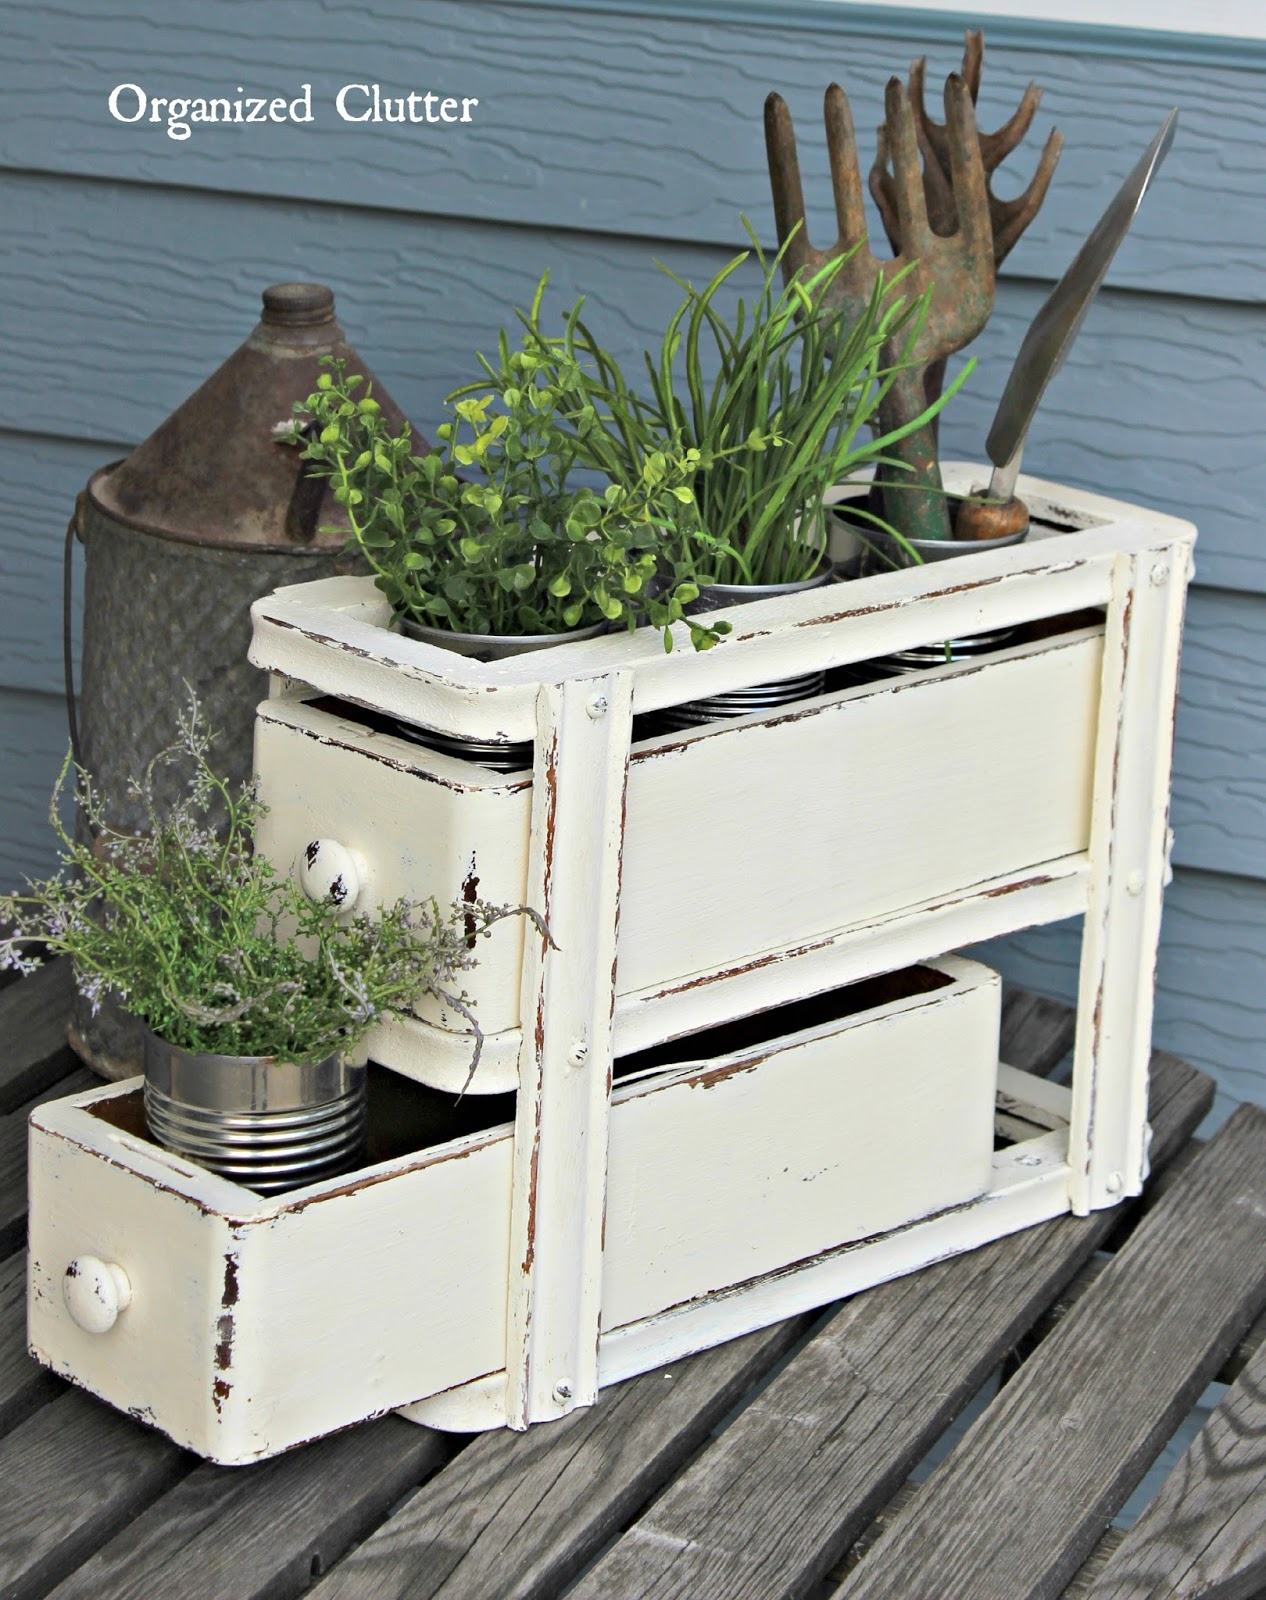 Sewing machine drawers re purposed as plant holder organized clutter - Four ways to repurpose an old sewing machine ...